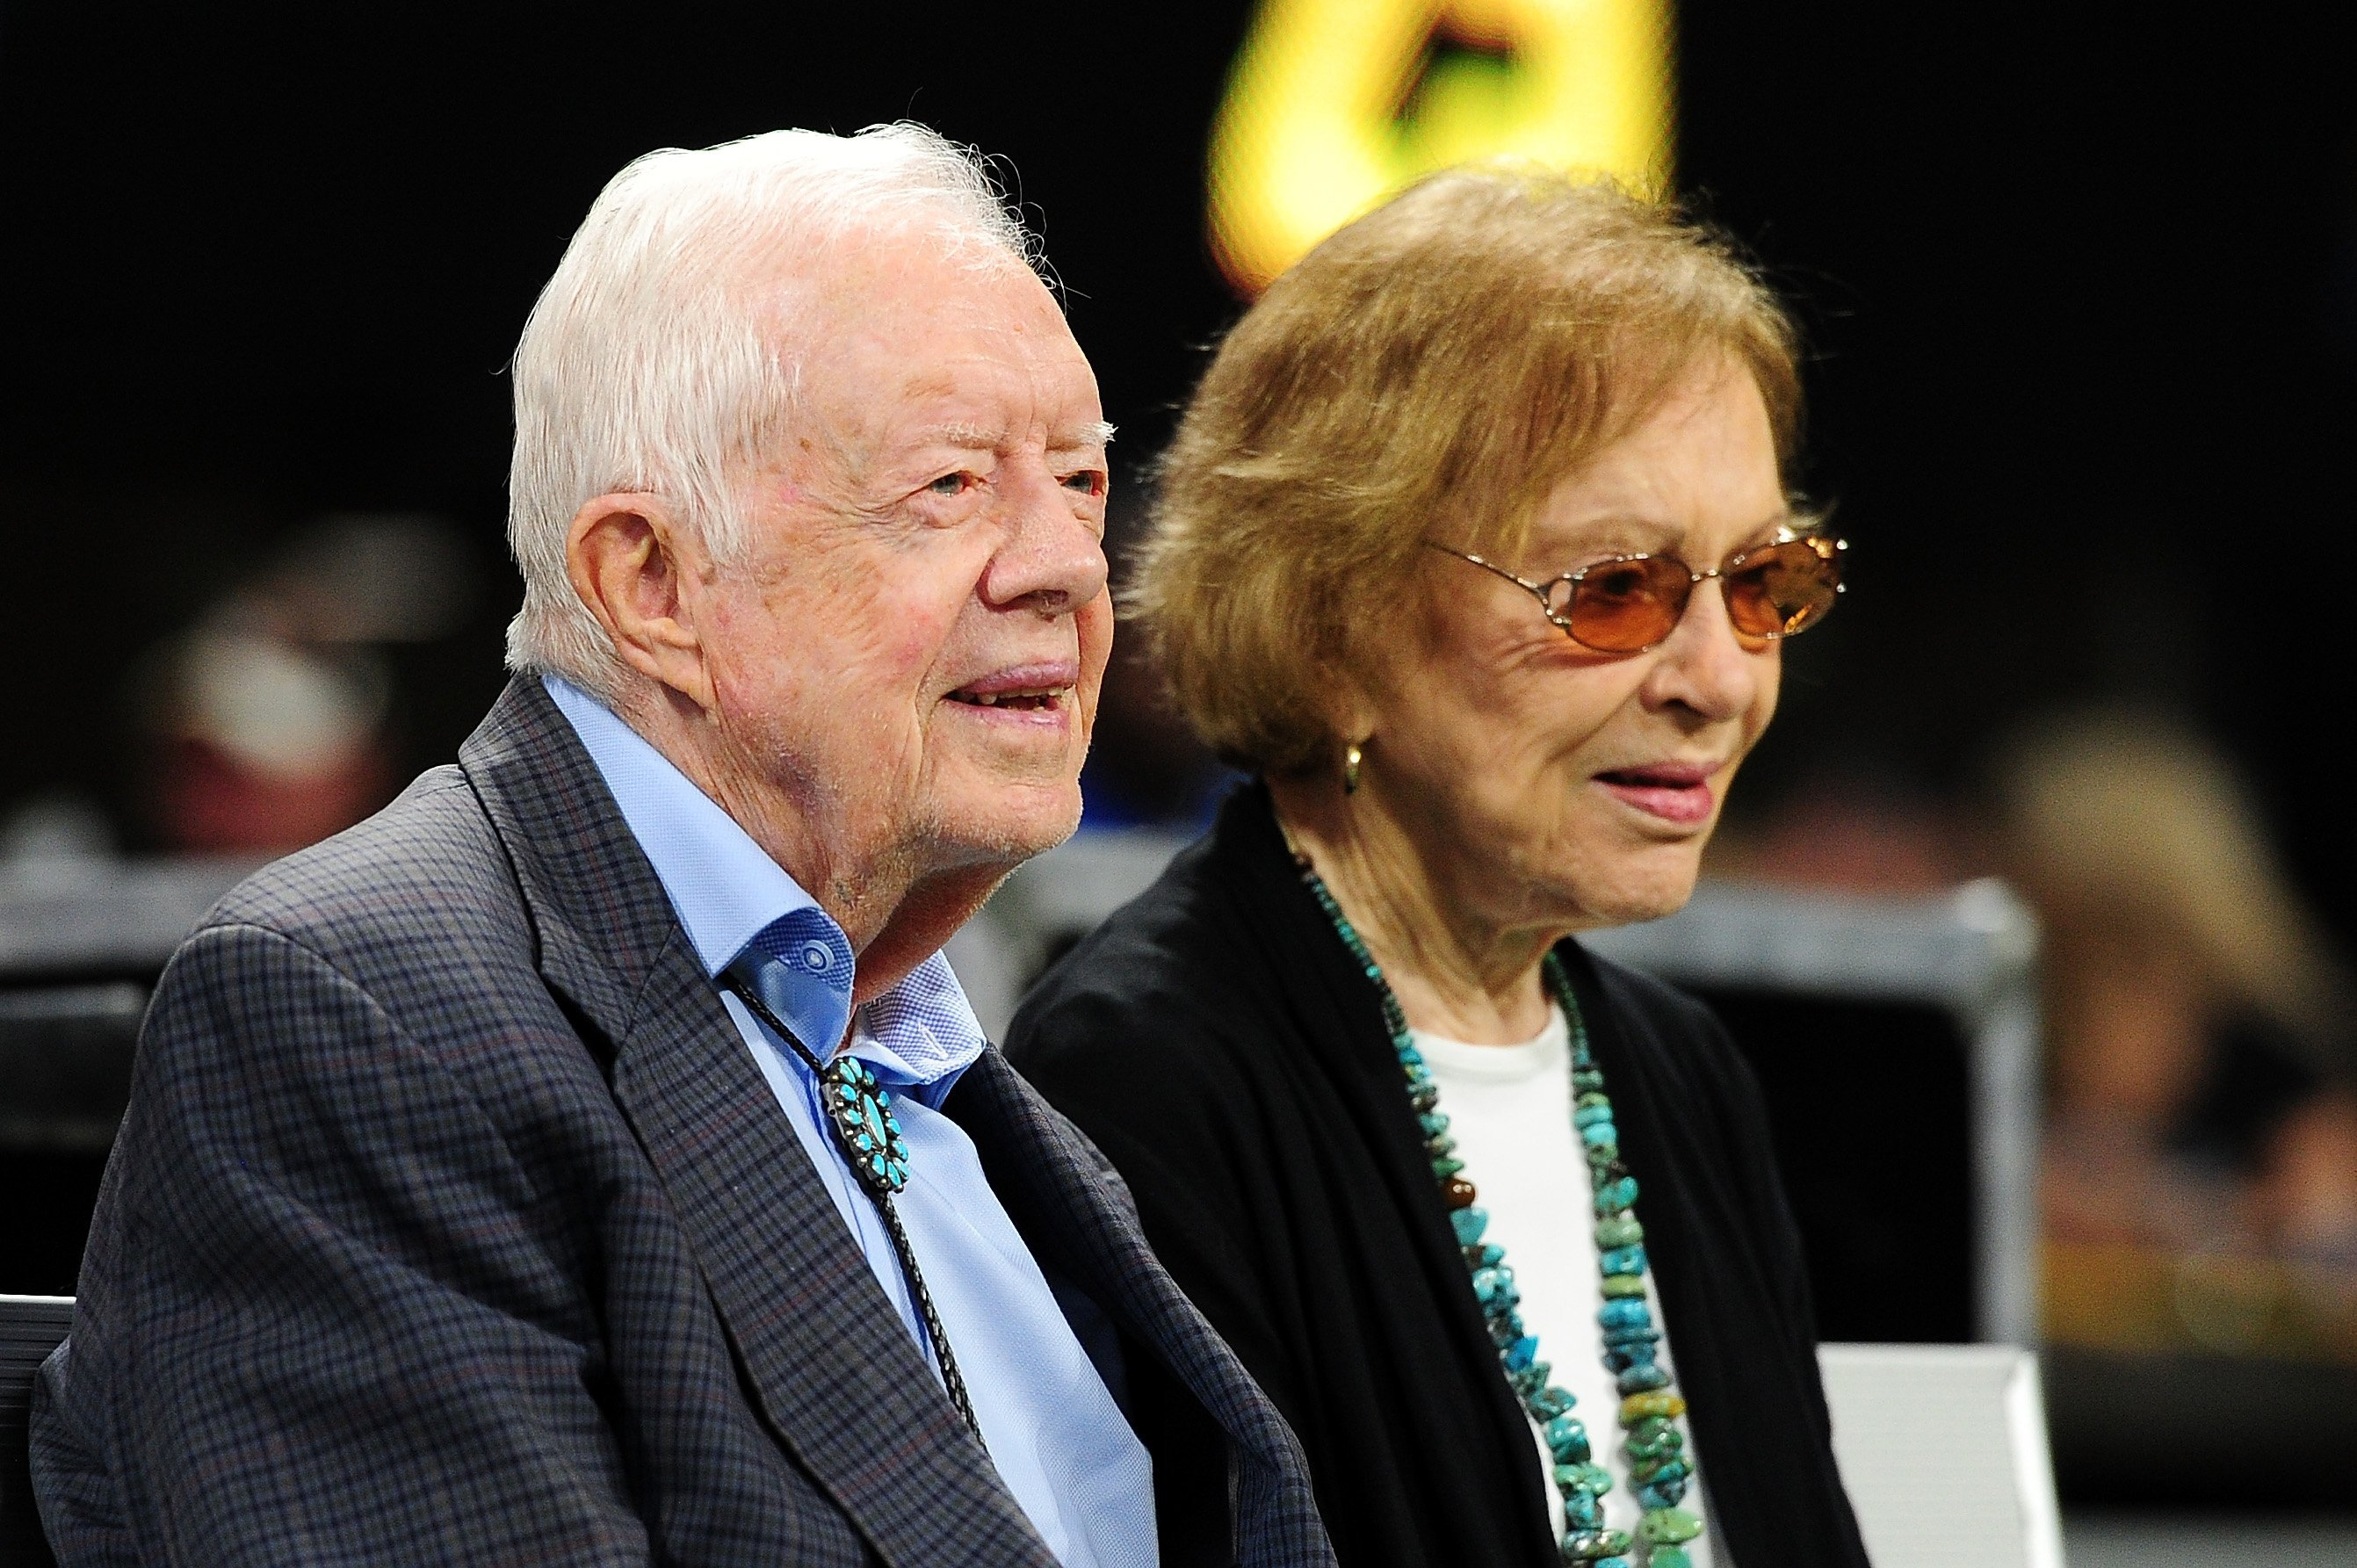 Former president Jimmy Carter and his wife Rosalynn prior to the game between the Atlanta Falcons and the Cincinnati Bengals at Mercedes-Benz Stadium | Source: Getty Images